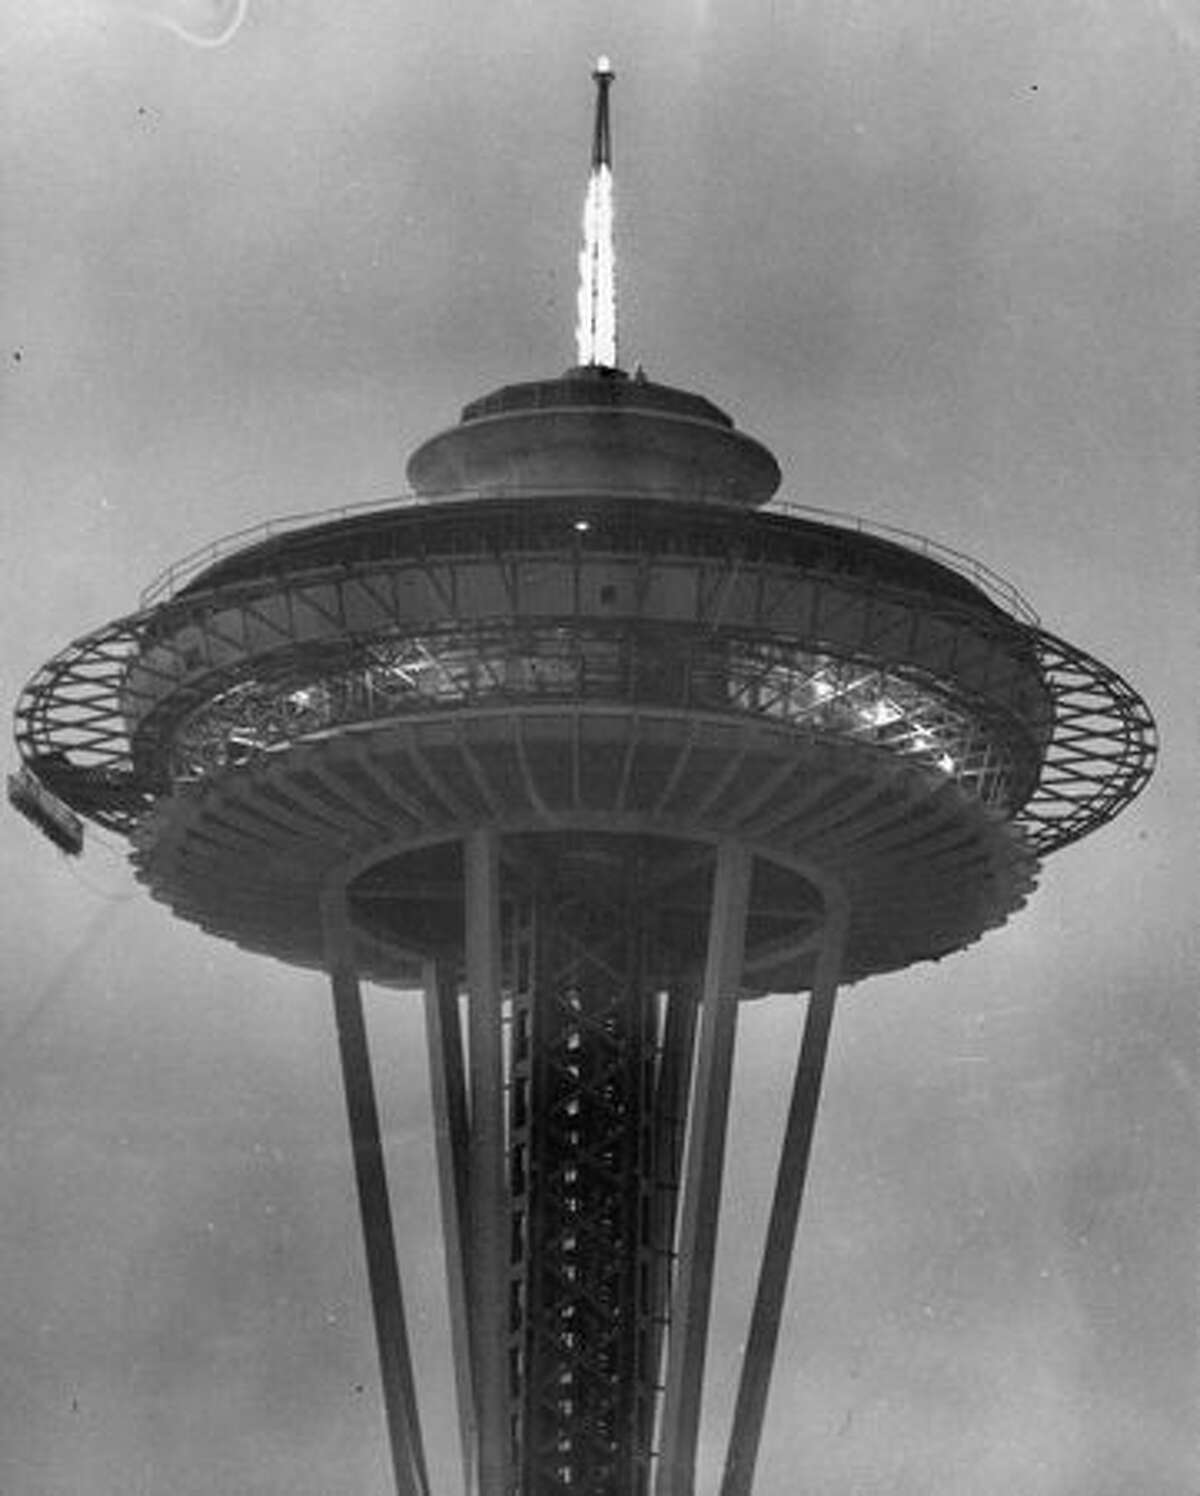 The Space Needle, early 1962. Note the flames coming from the antenna; the Needle was equipped with natural gas, which was burned at the top periodically for dramatic effect.